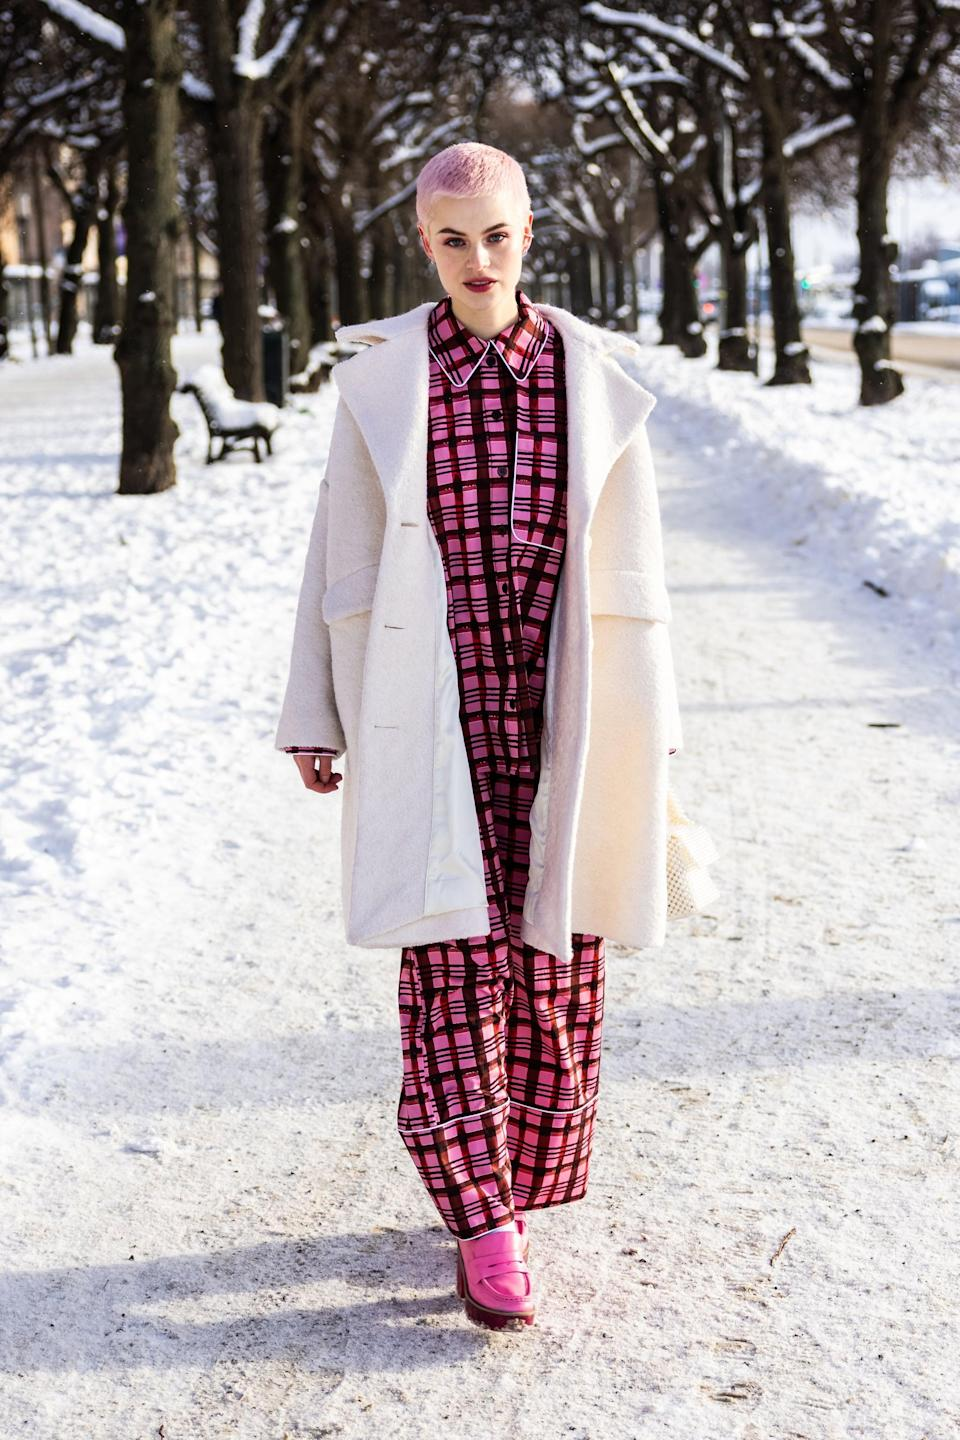 <p>Layer a snow-white wool coat over printed pajamas and style with loafers, and you'll look chic as can be.</p>